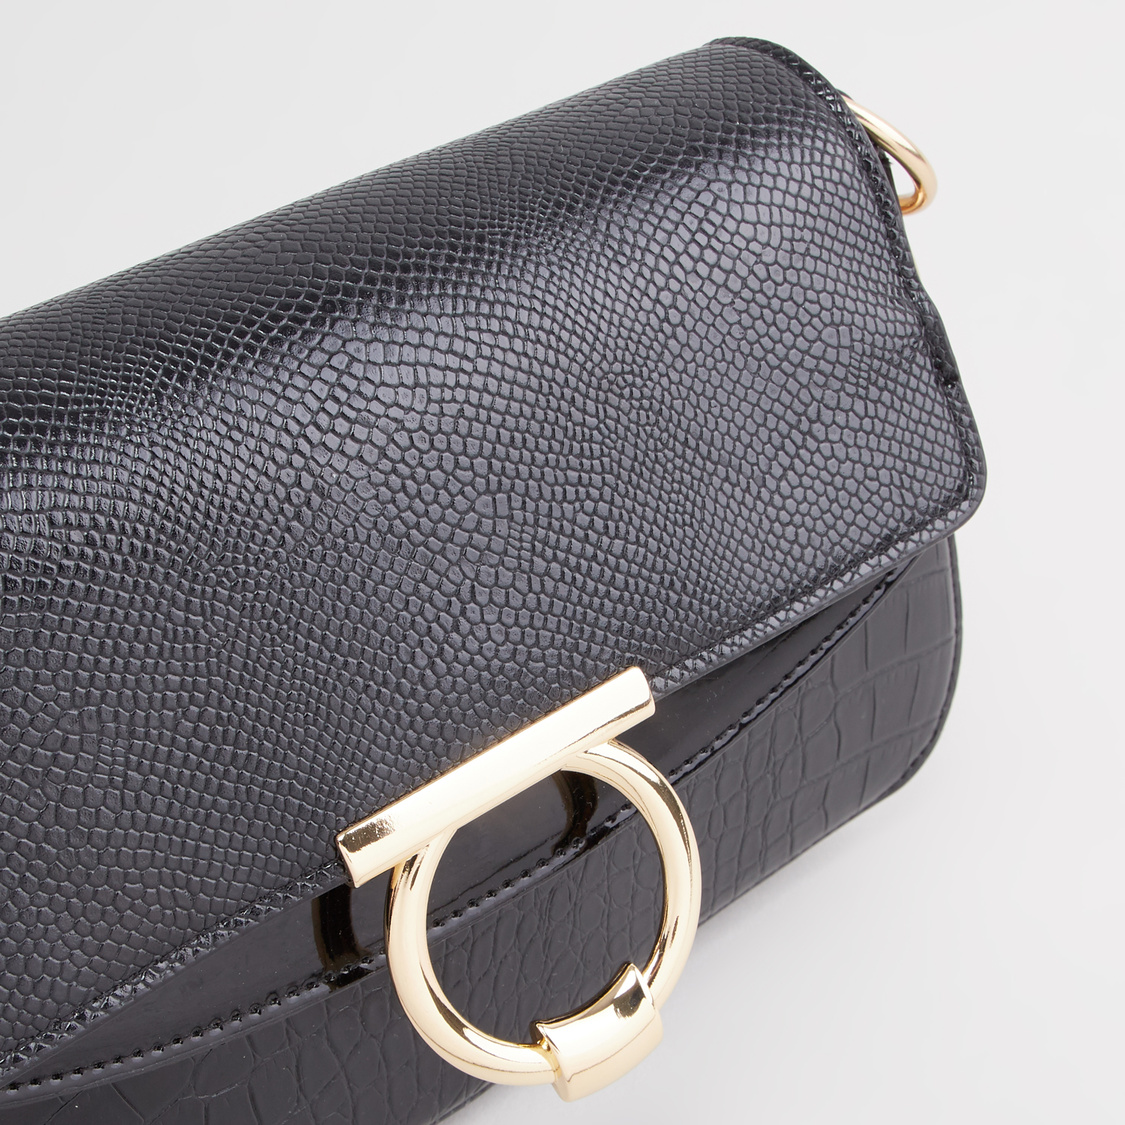 Textured Satchel Bag with Pin Buckle Closure